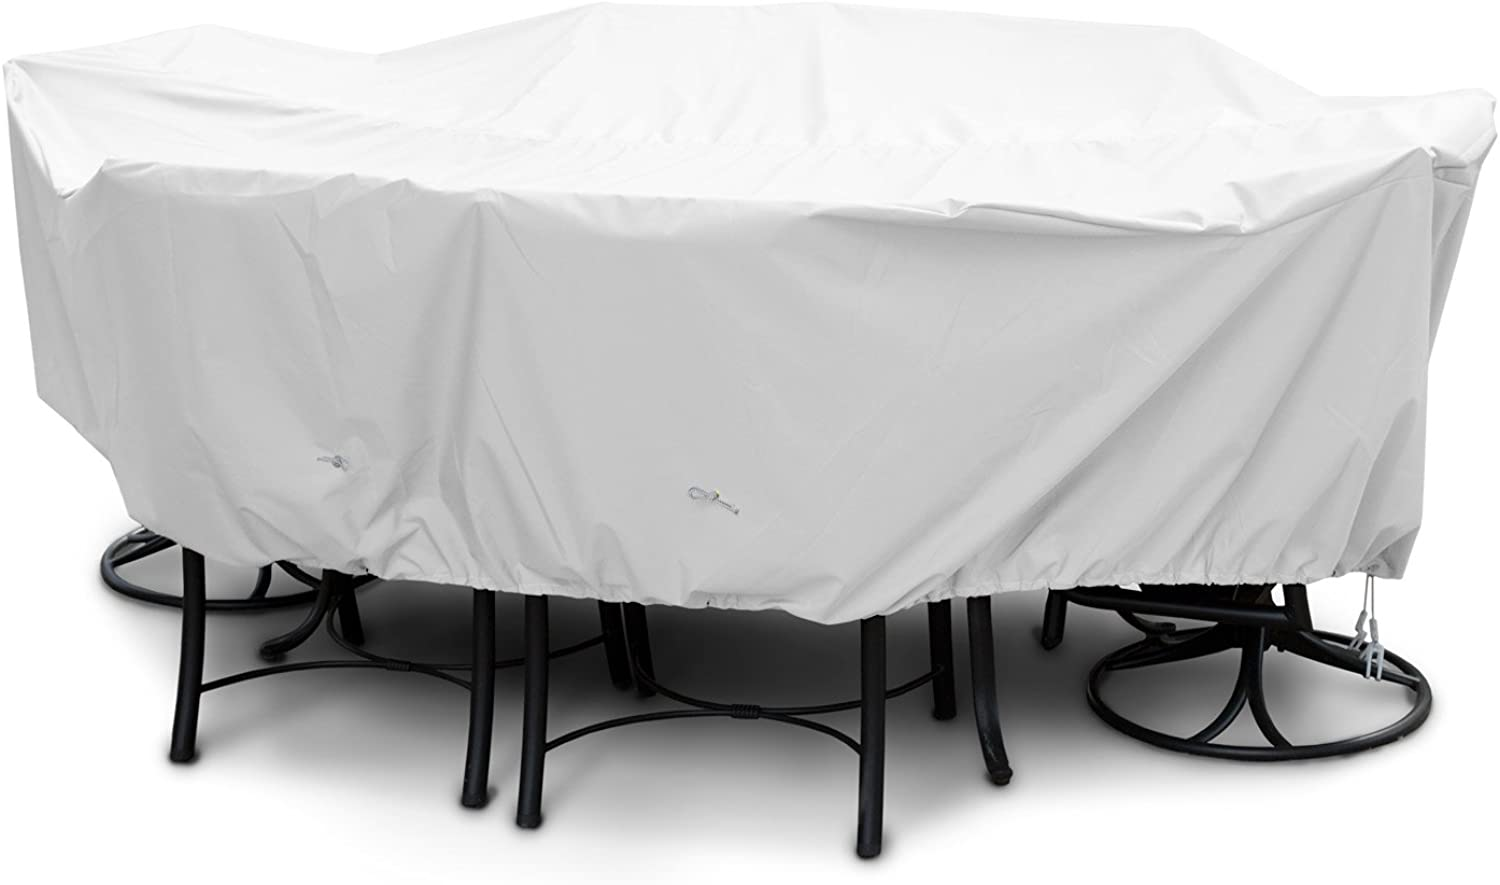 KoverRoos Weathermax 11352 Large Dining Set Cover, 108 by 82 by 28-Inch, White